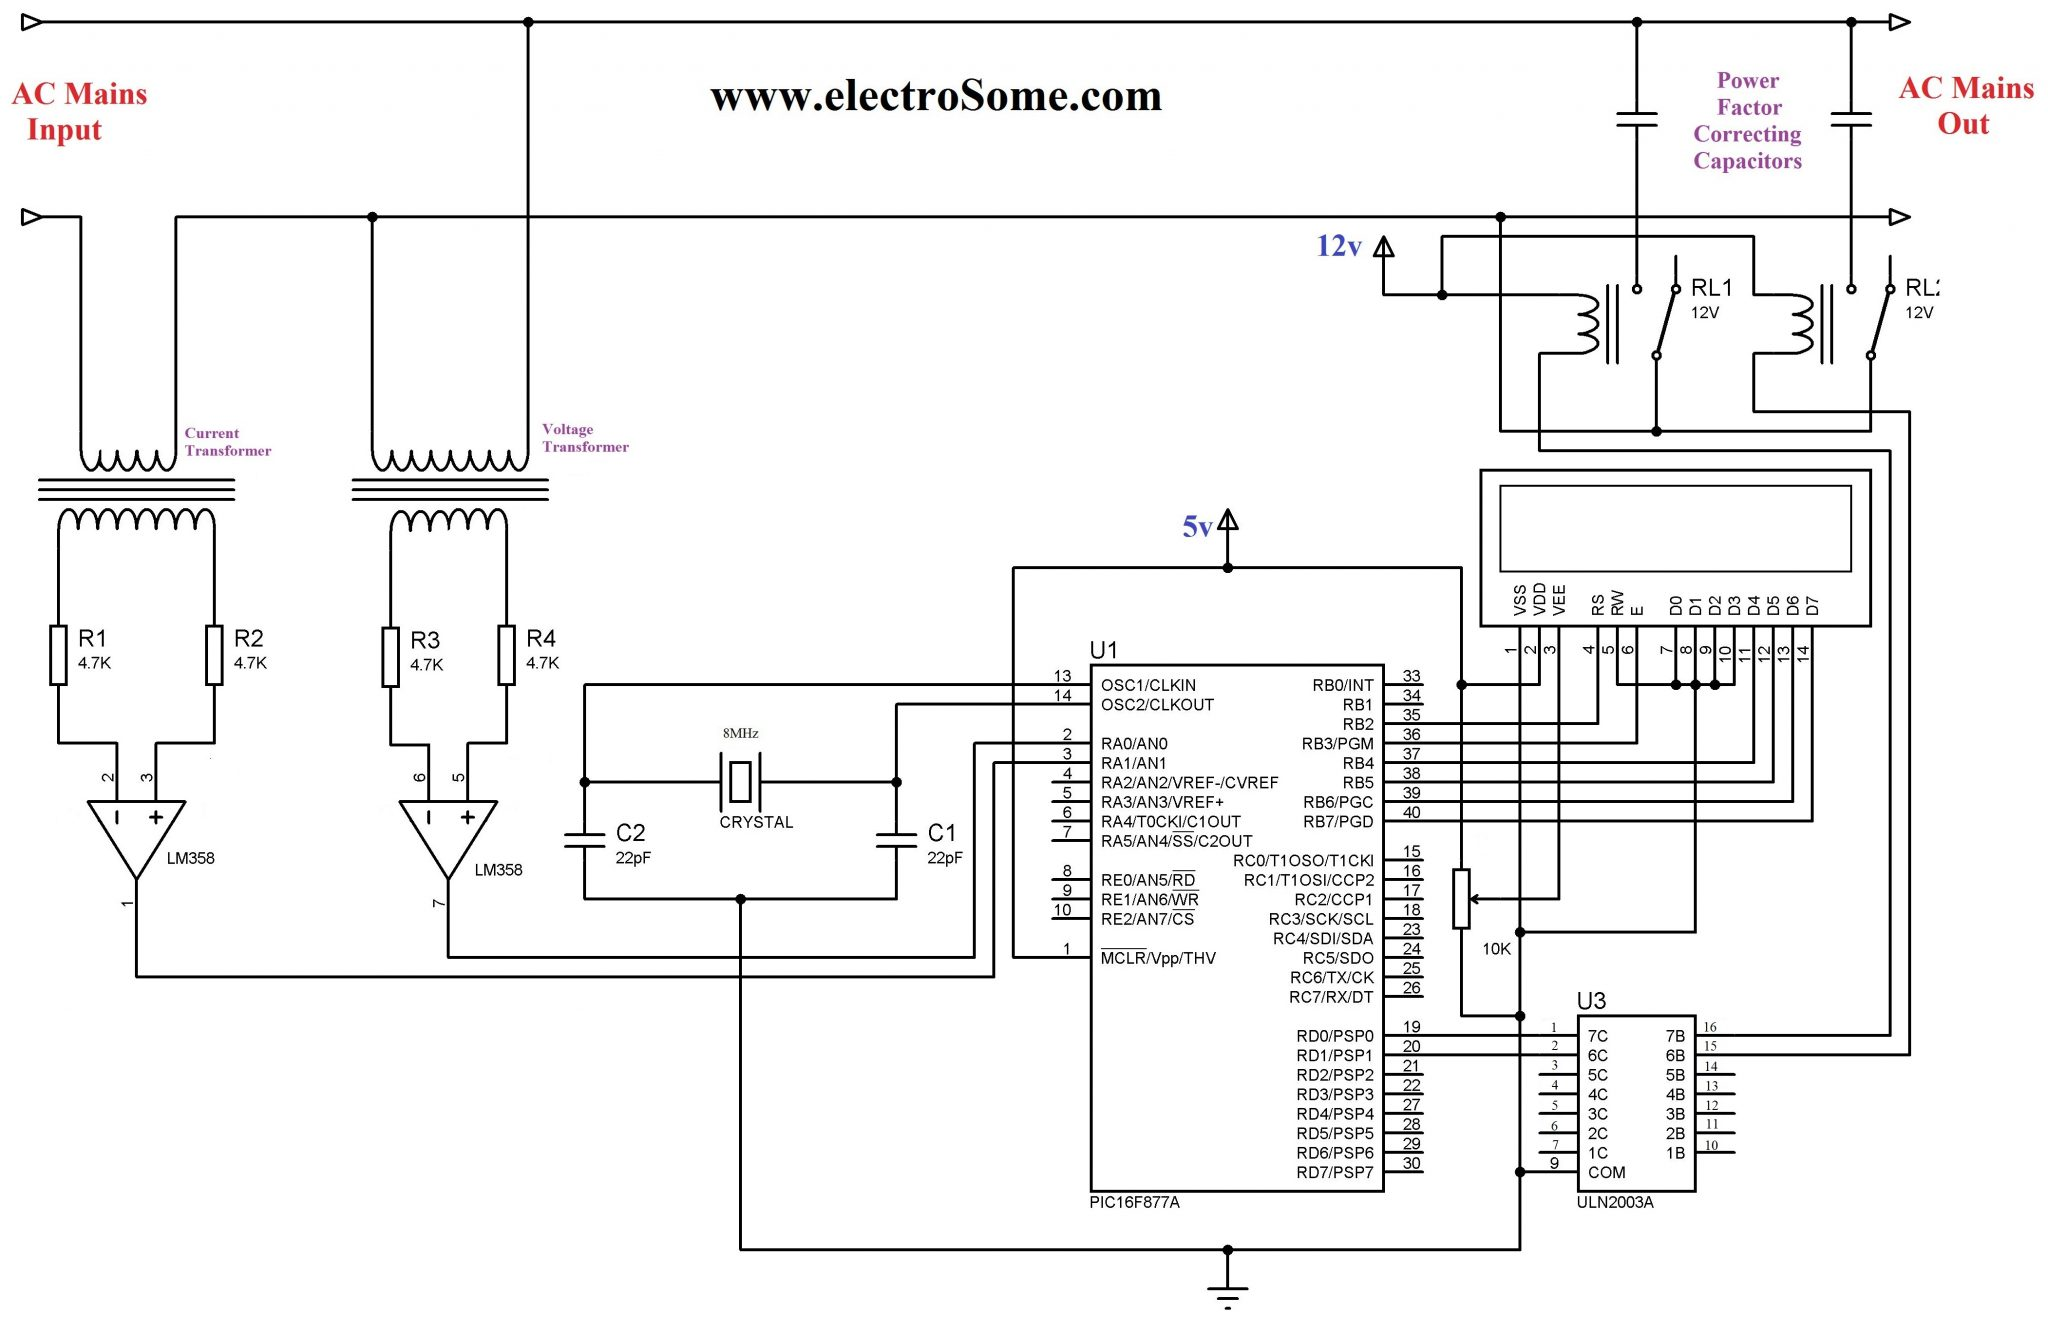 electric meter base wiring diagram electric discover your wiring power factor meter schematic diagram